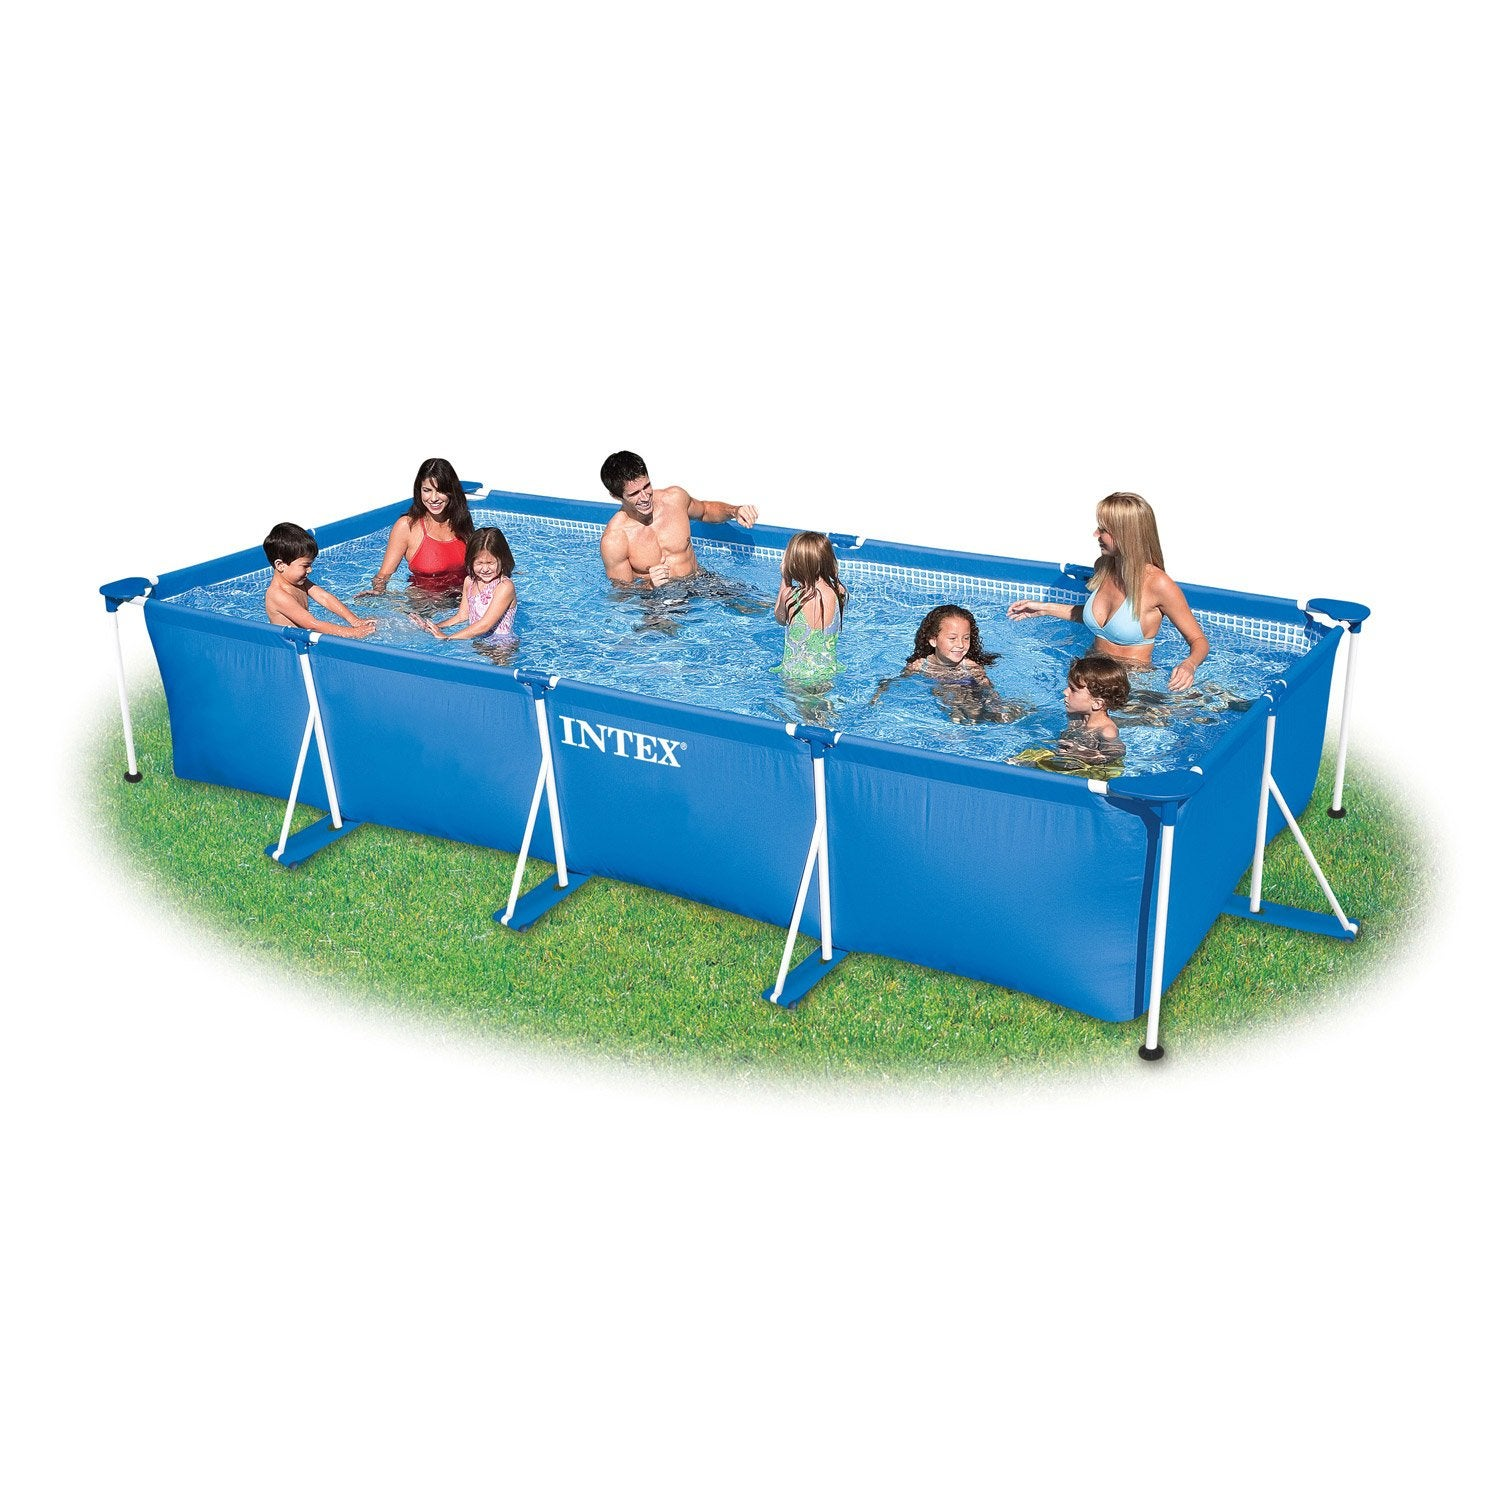 Piscine hors sol autoportante tubulaire intex l x l for Piscine auchan hors sol